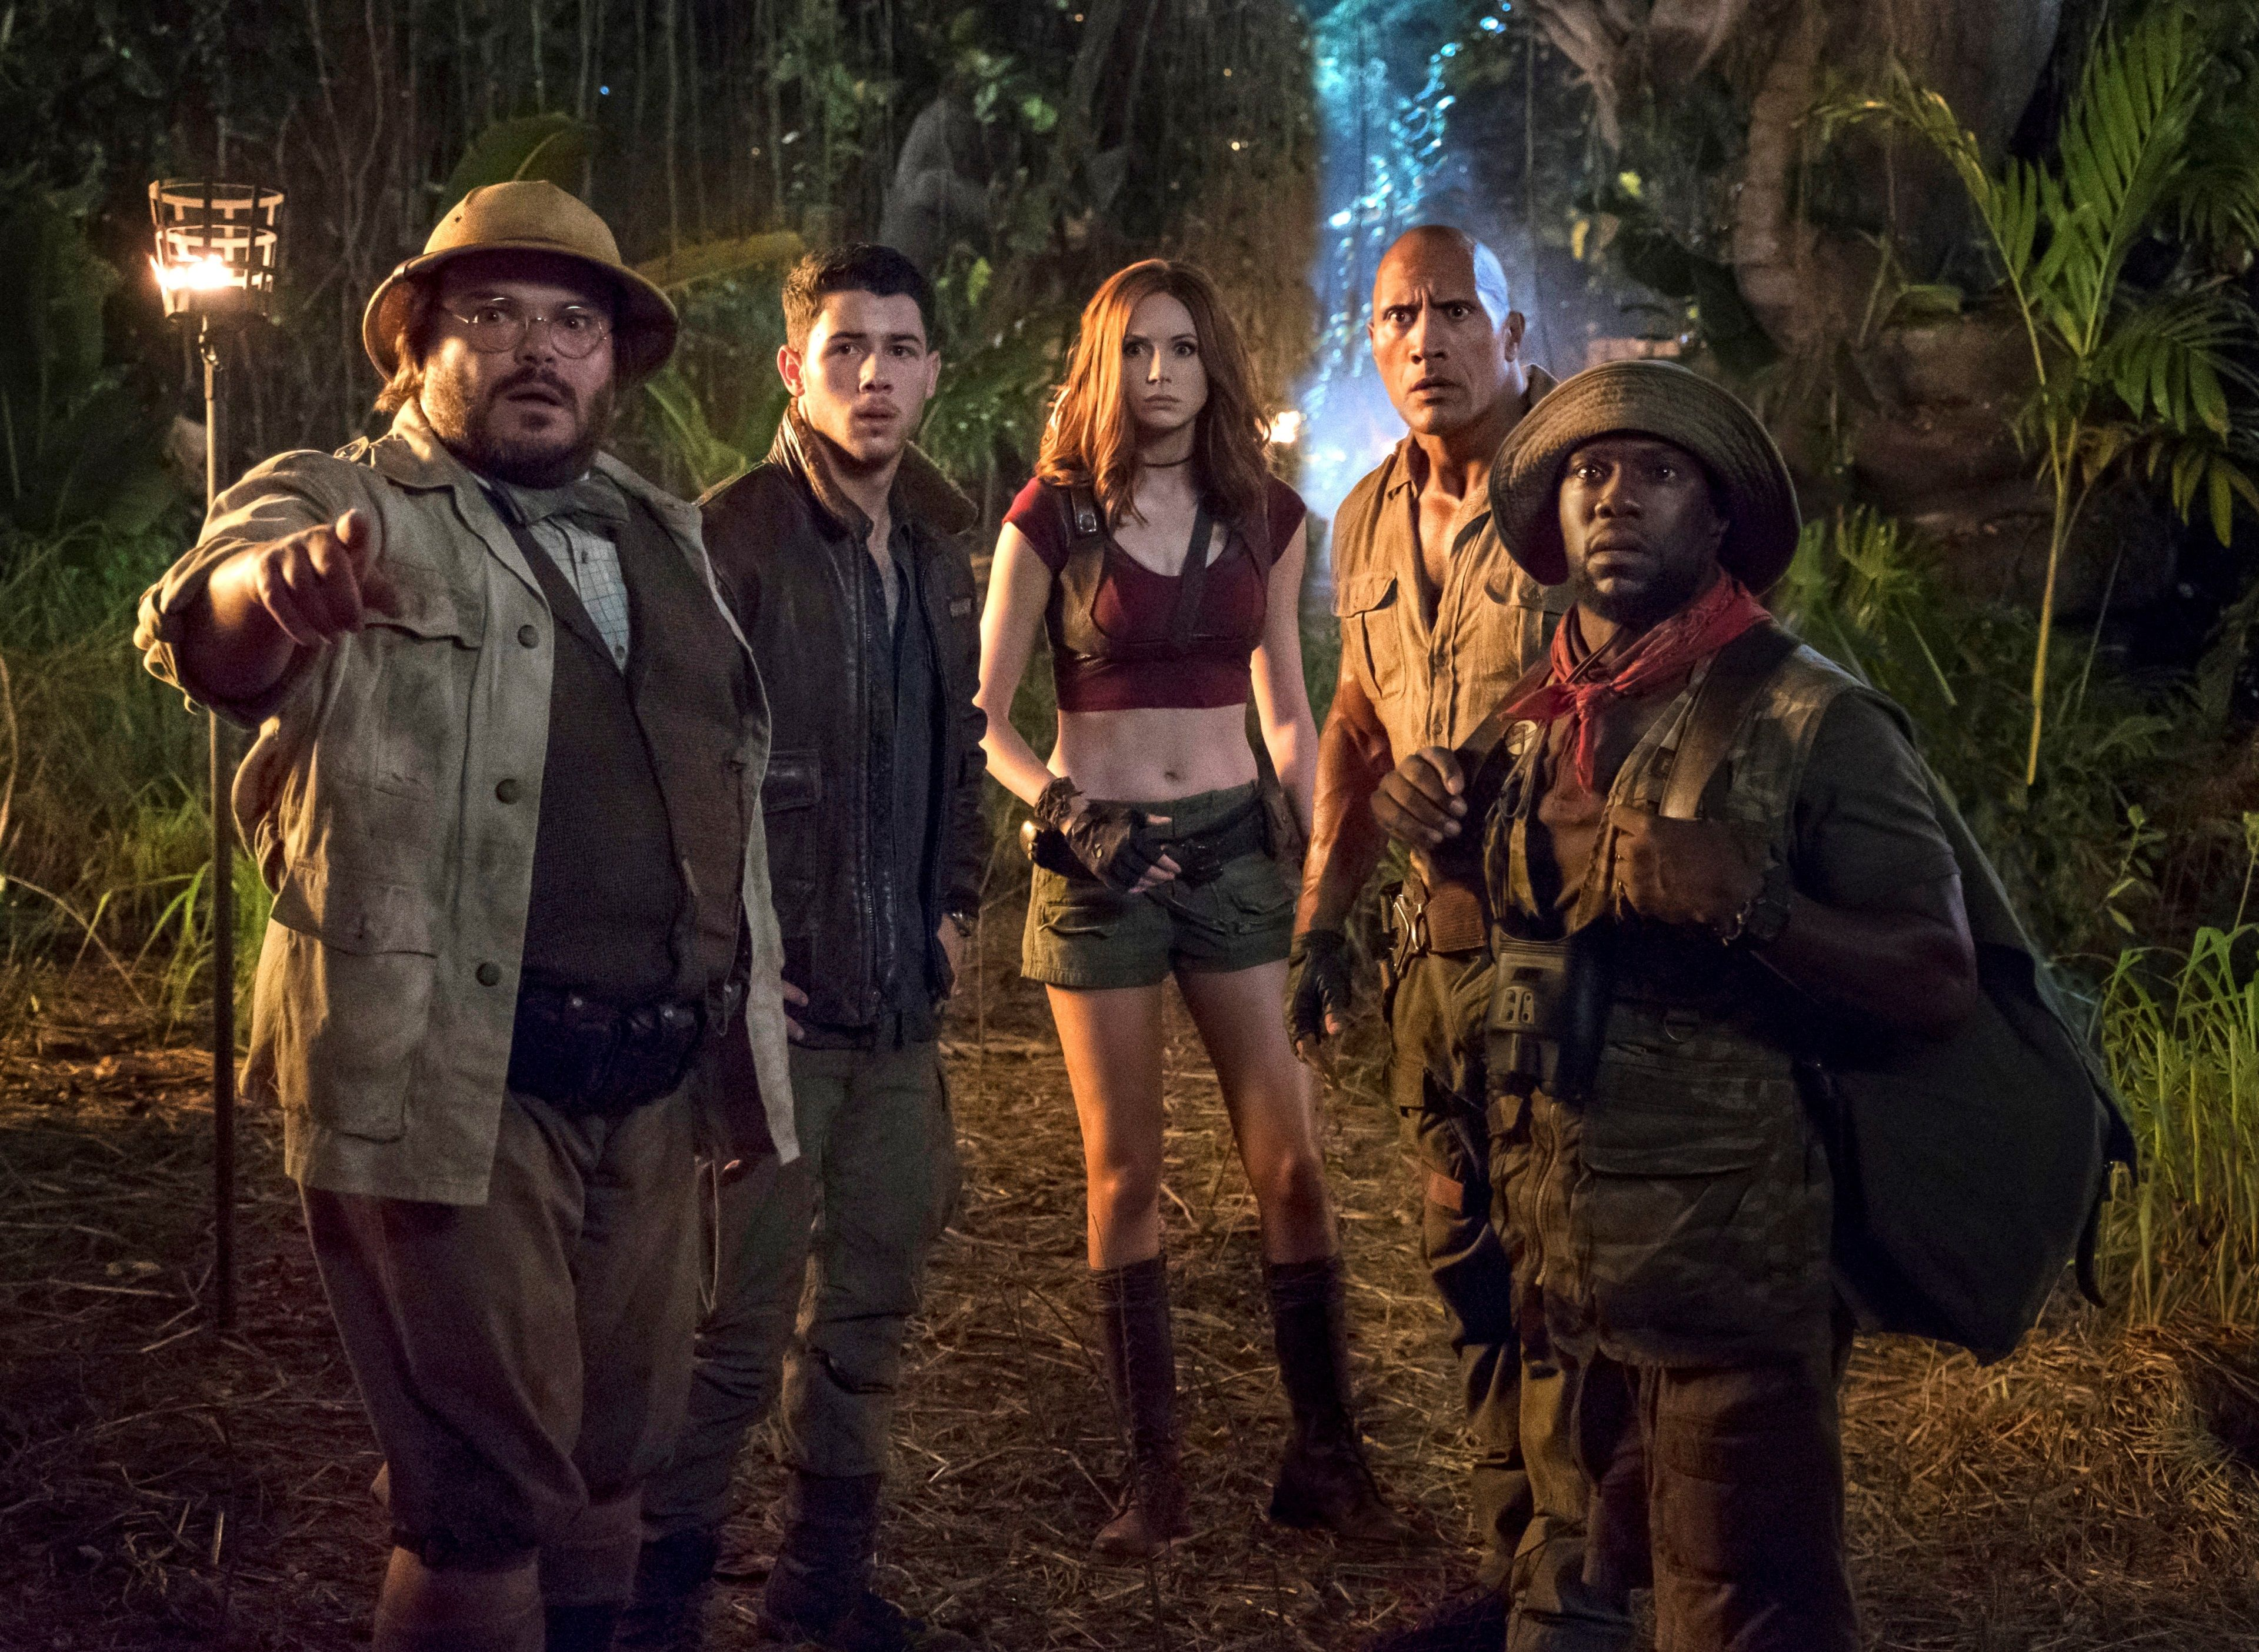 3840x2809 Jumanji Welcome To The Jungle 4k Hd Image For Wallpaper